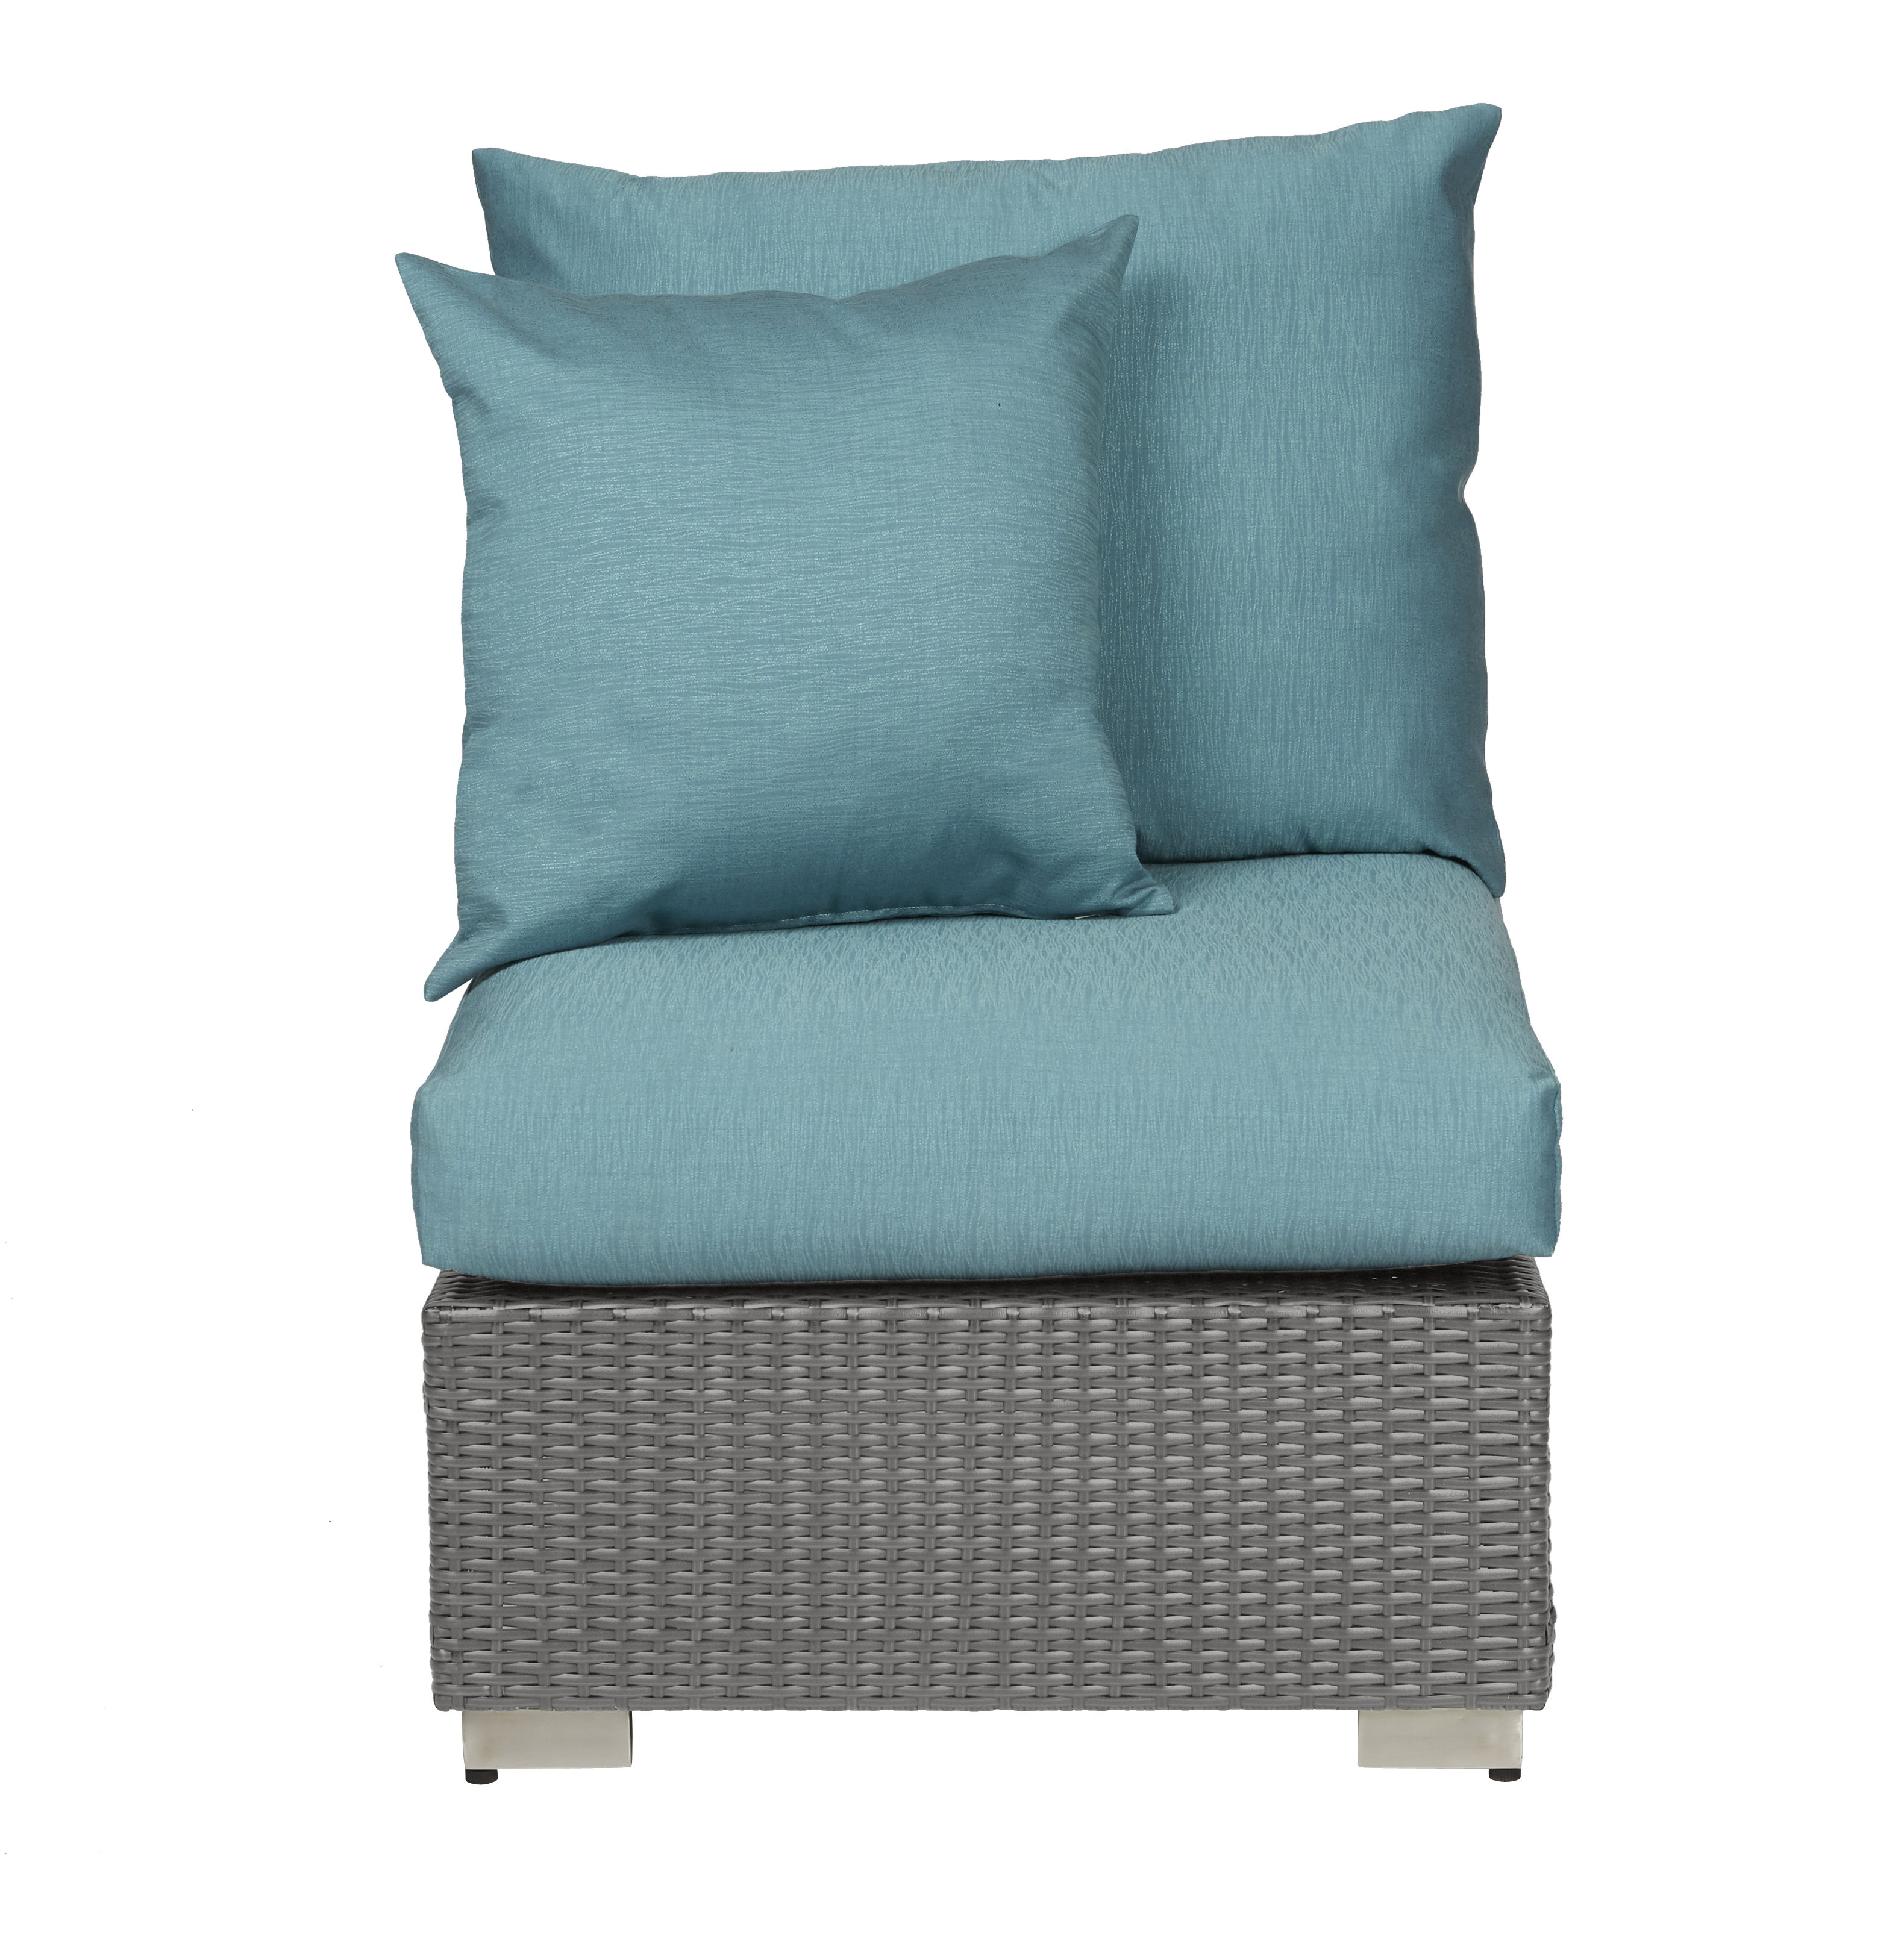 Well Known Mcmanis Outdoor Patio Chair With Cushions Intended For Mcmanis Patio Sofas With Cushion (View 16 of 20)